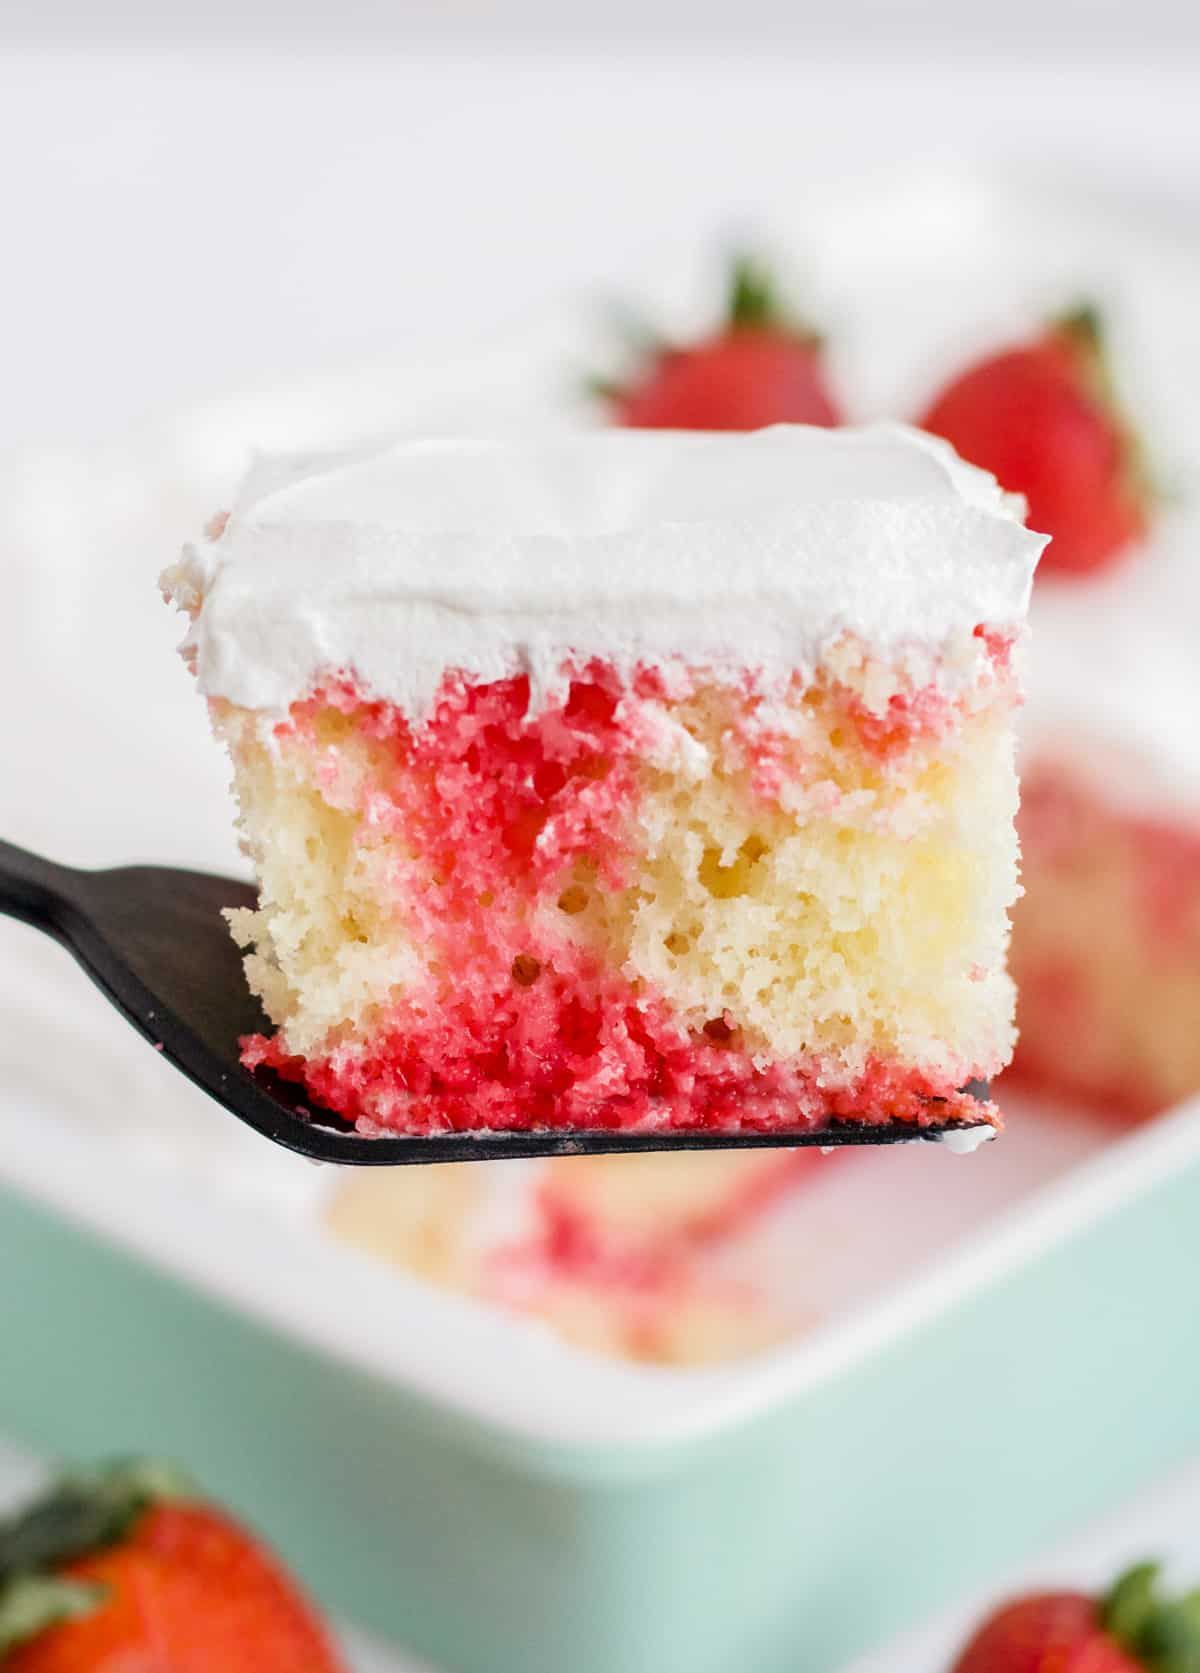 Slice of Poke Cake being held up by cake server showing strawberry jello